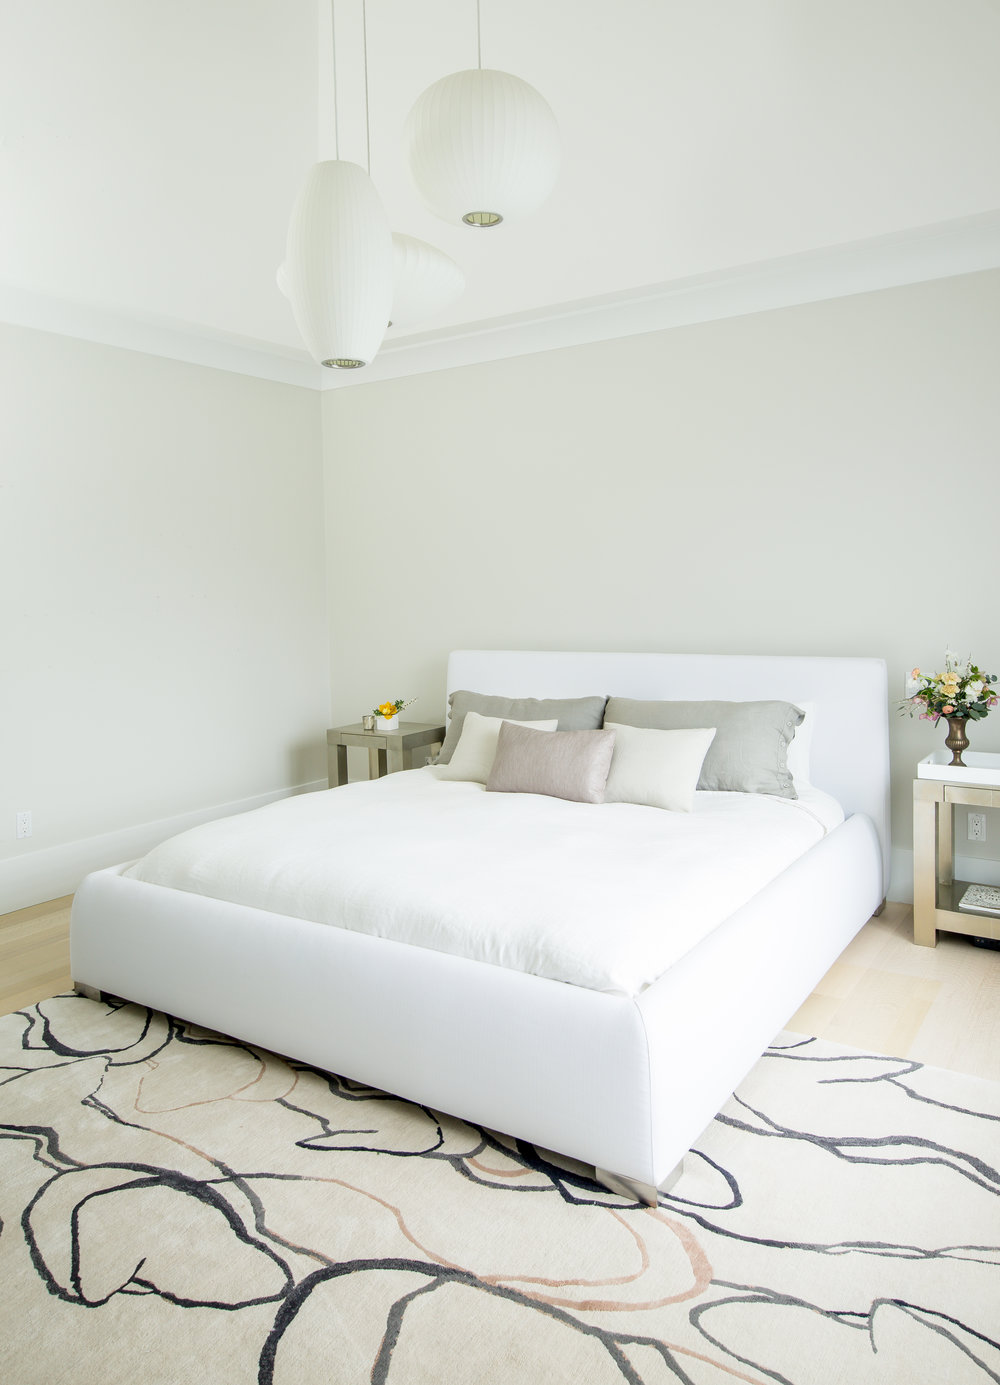 King bed with a white washable slipcover